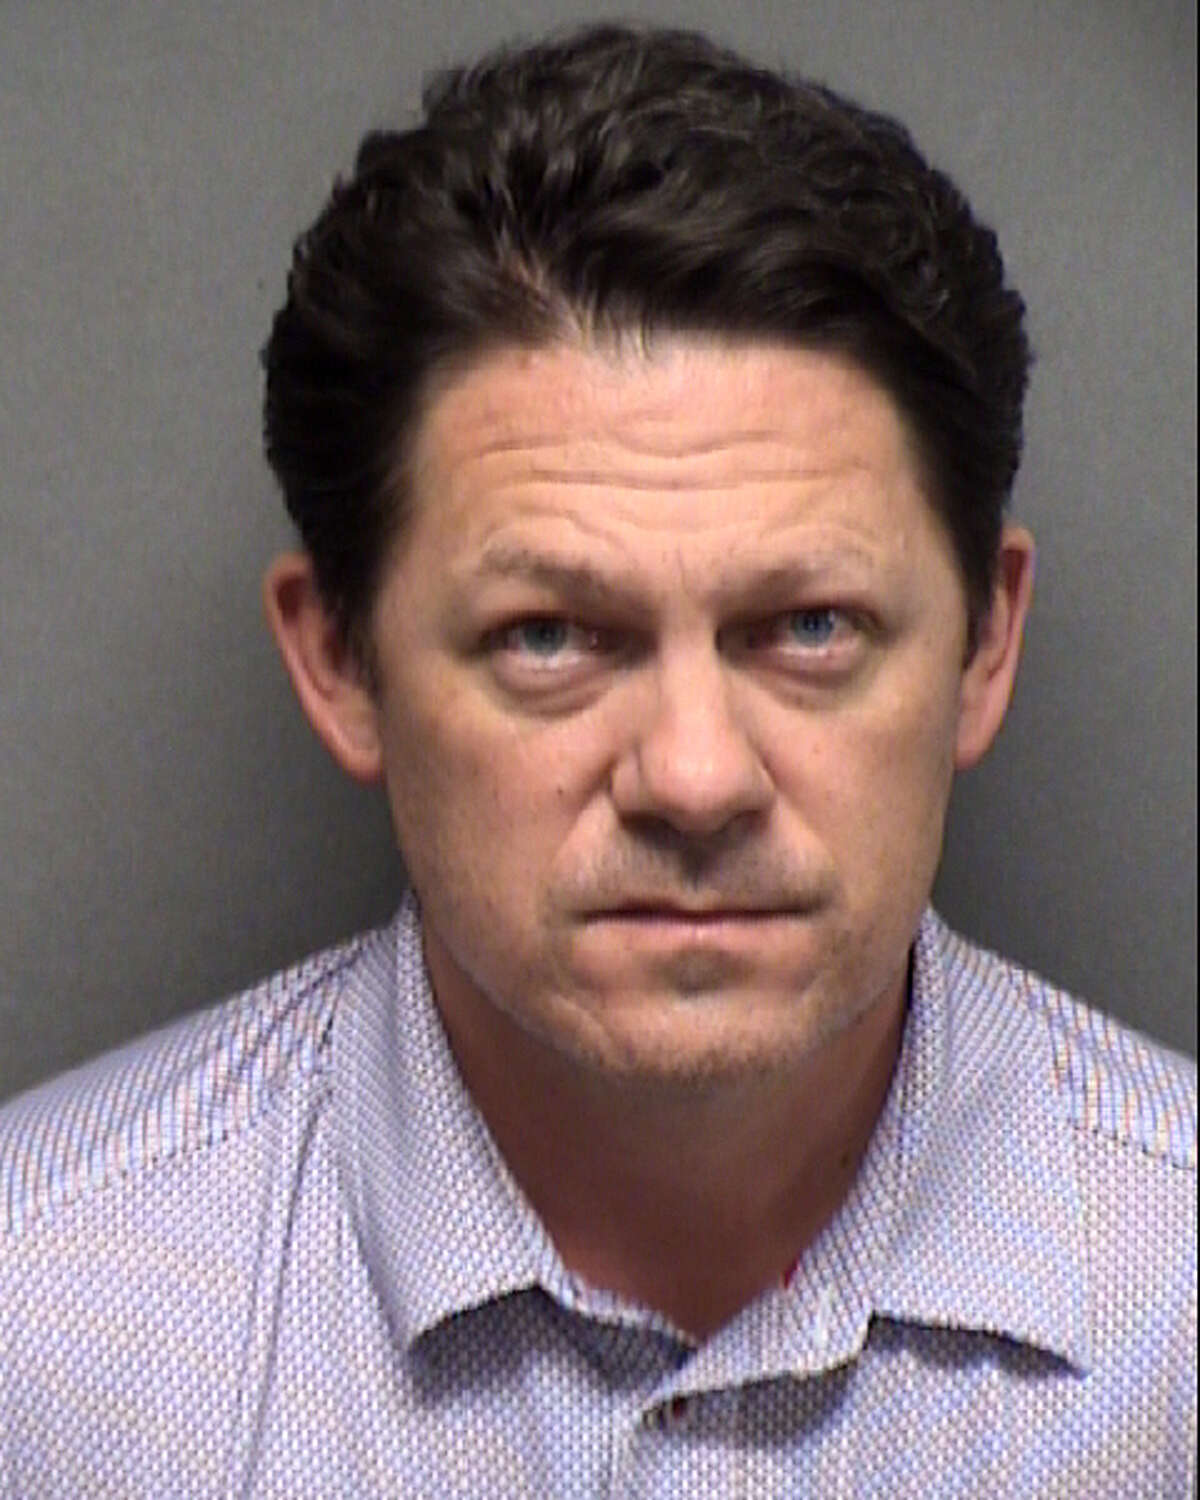 """Former City Councilman Christopher """"Chip"""" Haass, 43, was arrested on a prostitution charge Wednesday afternoon, according to court records."""